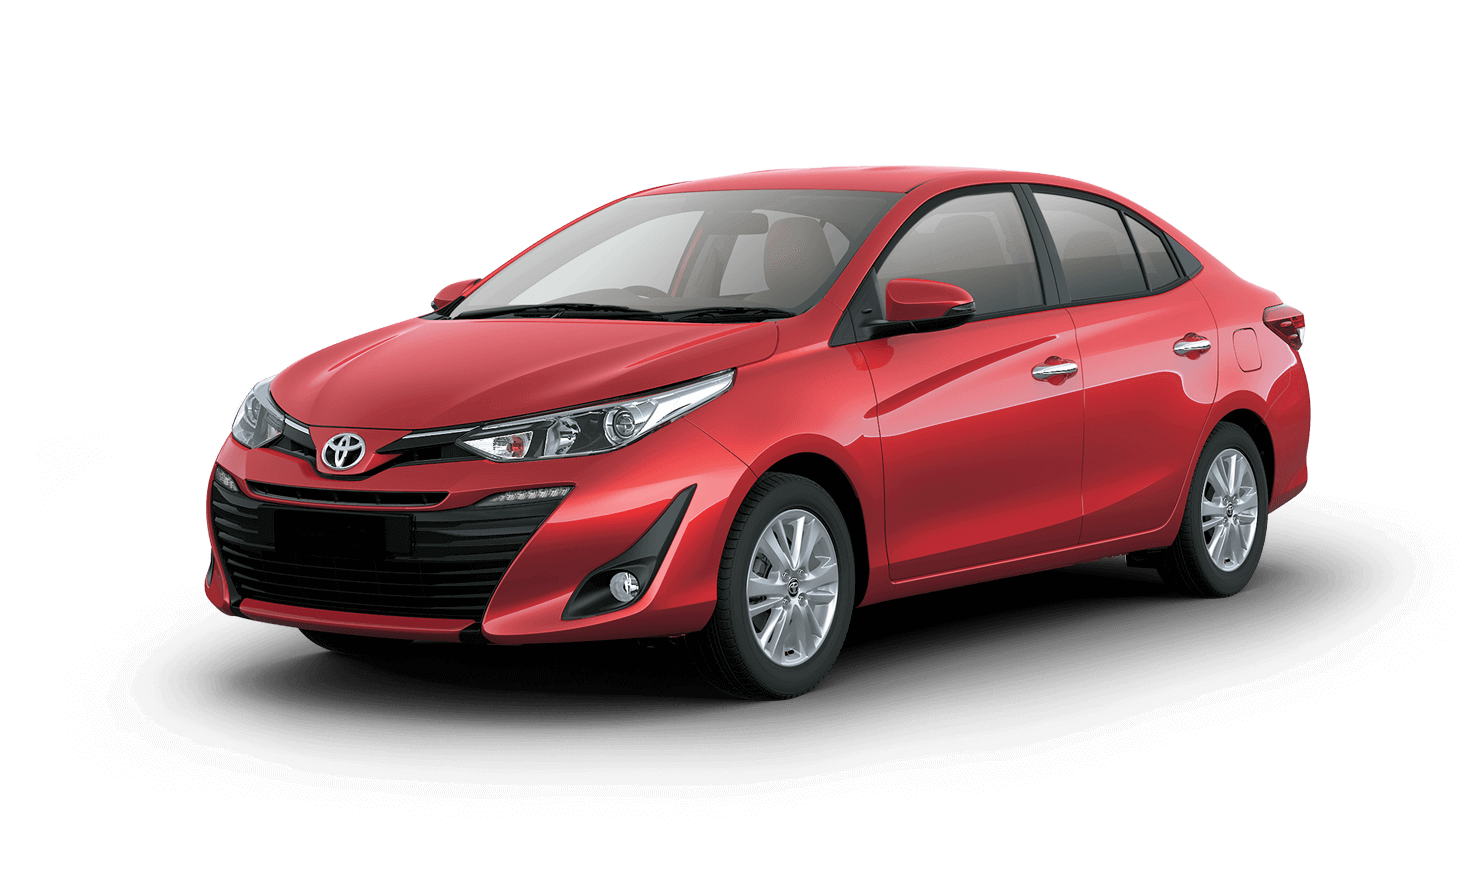 Toyota car service near me at Coopers Plains